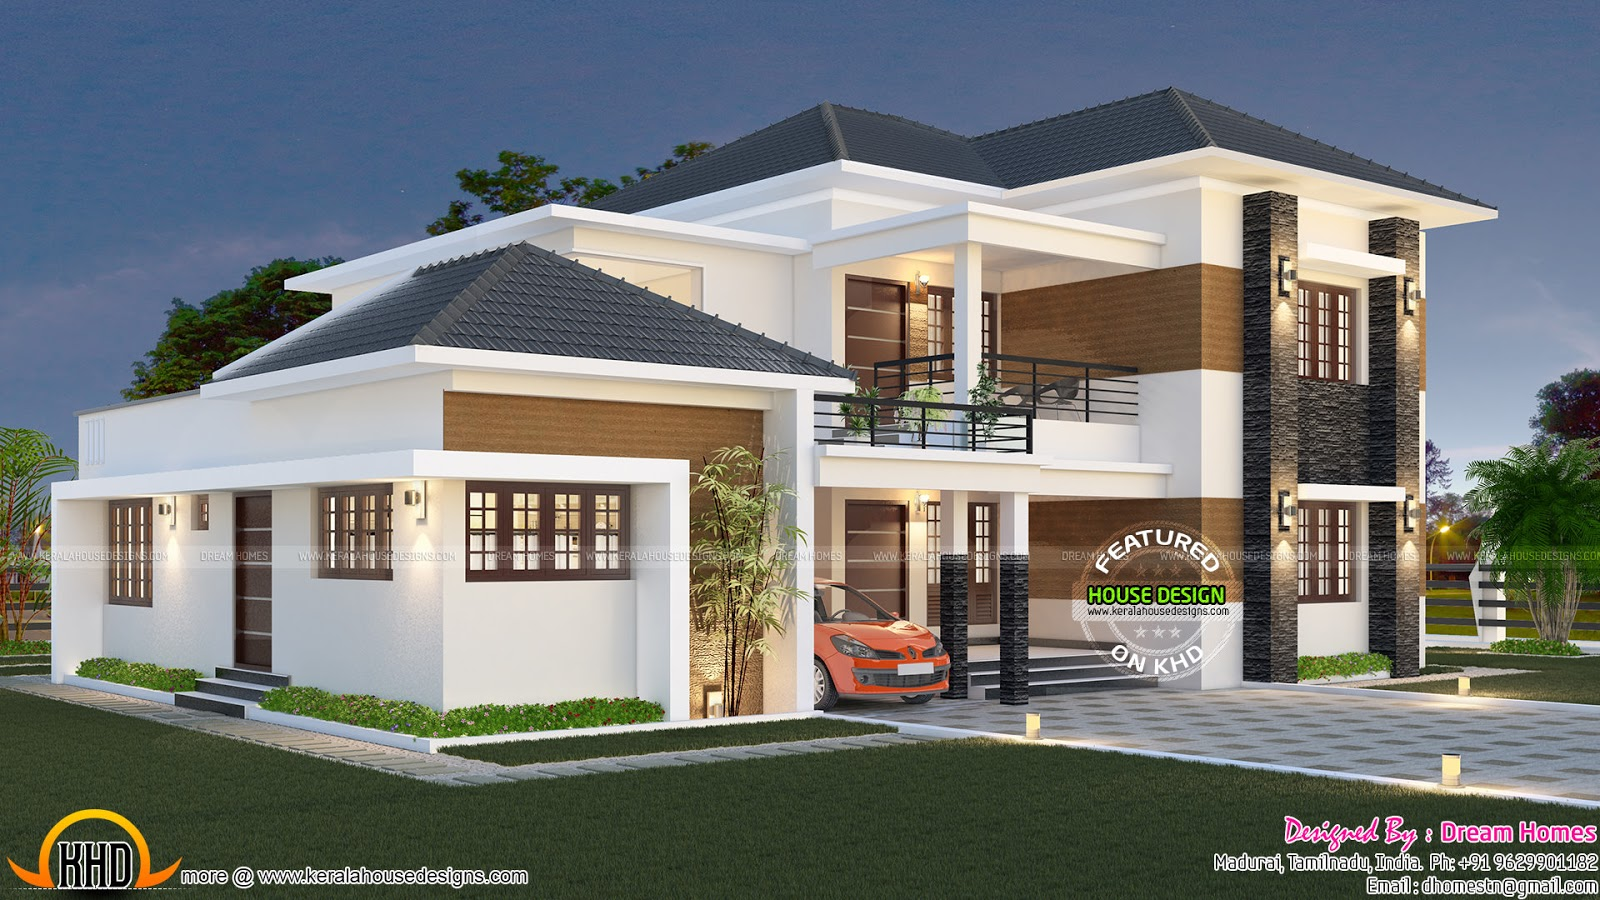 Elegant south indian villa kerala home design and floor plans Elegant home design ideas